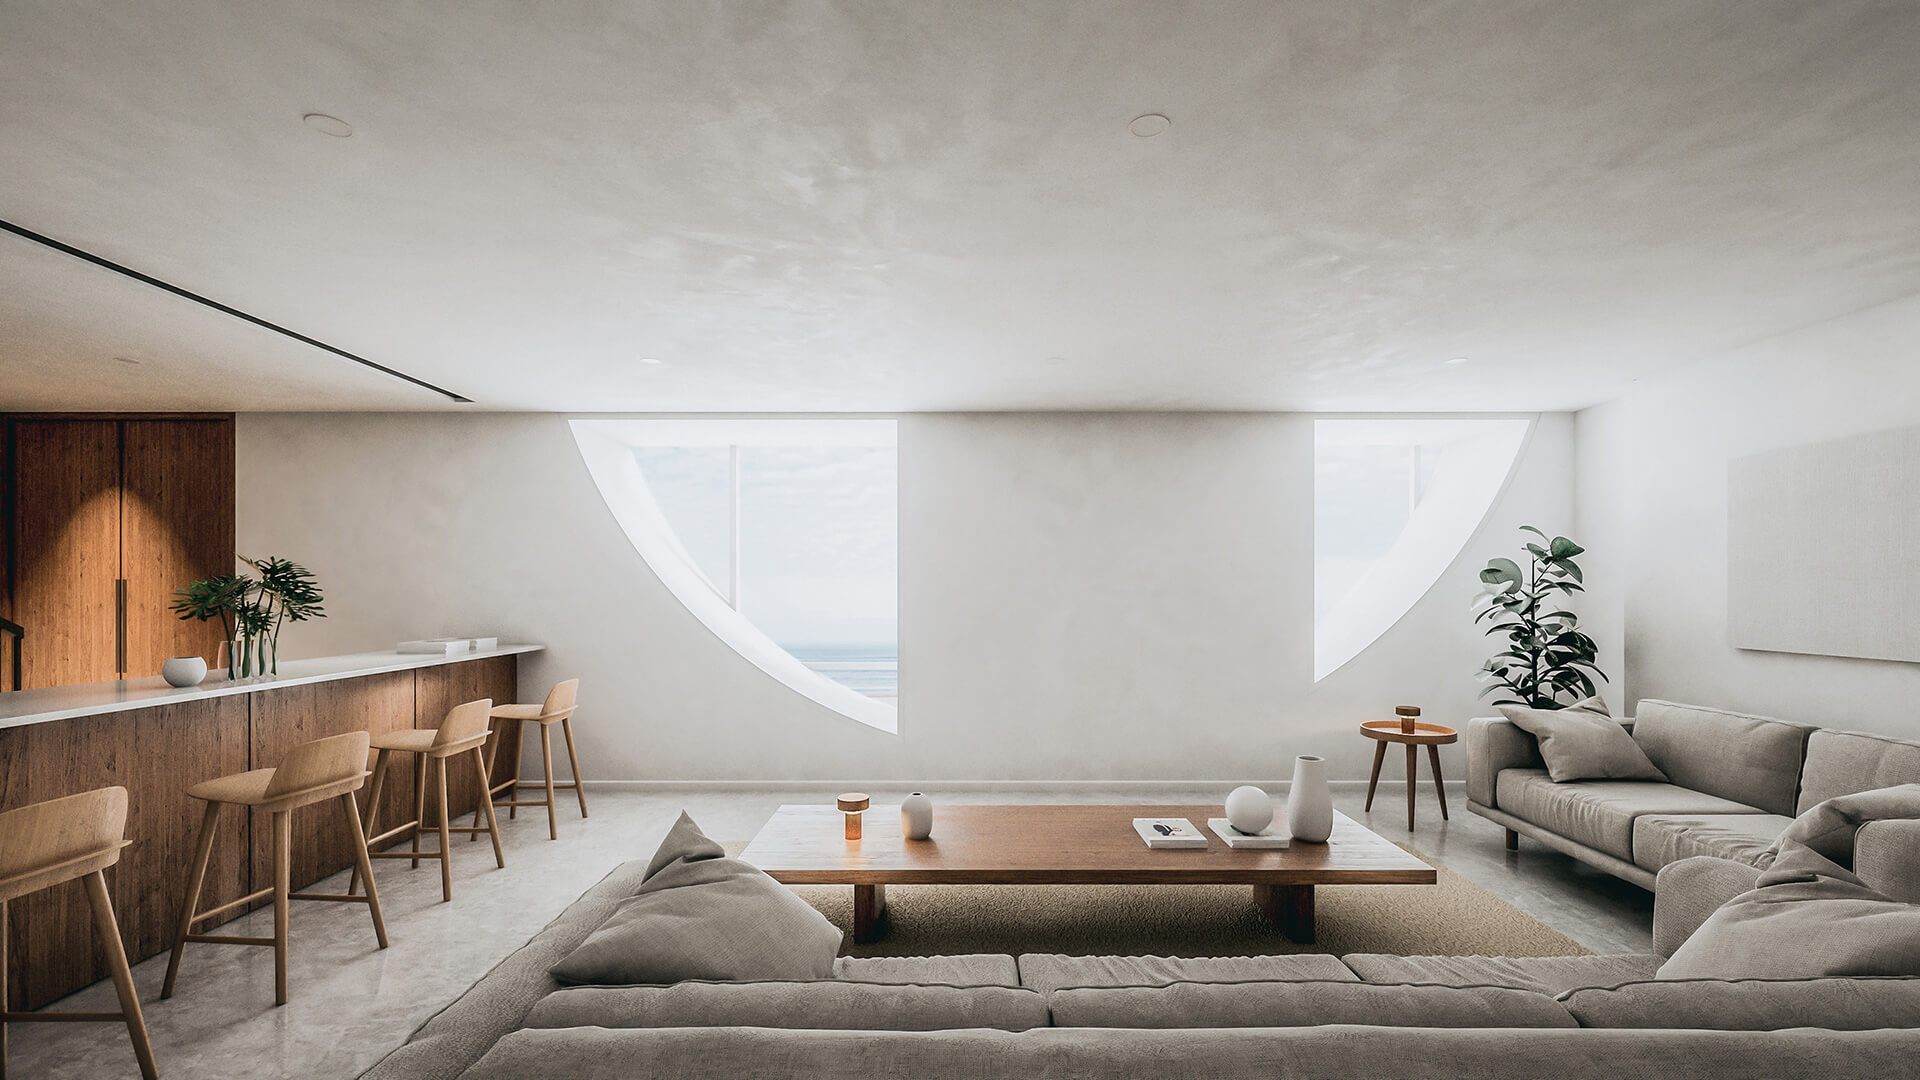 The insides display vast open spaces rendered in white | Dune House by Studio Vural | STIRworld